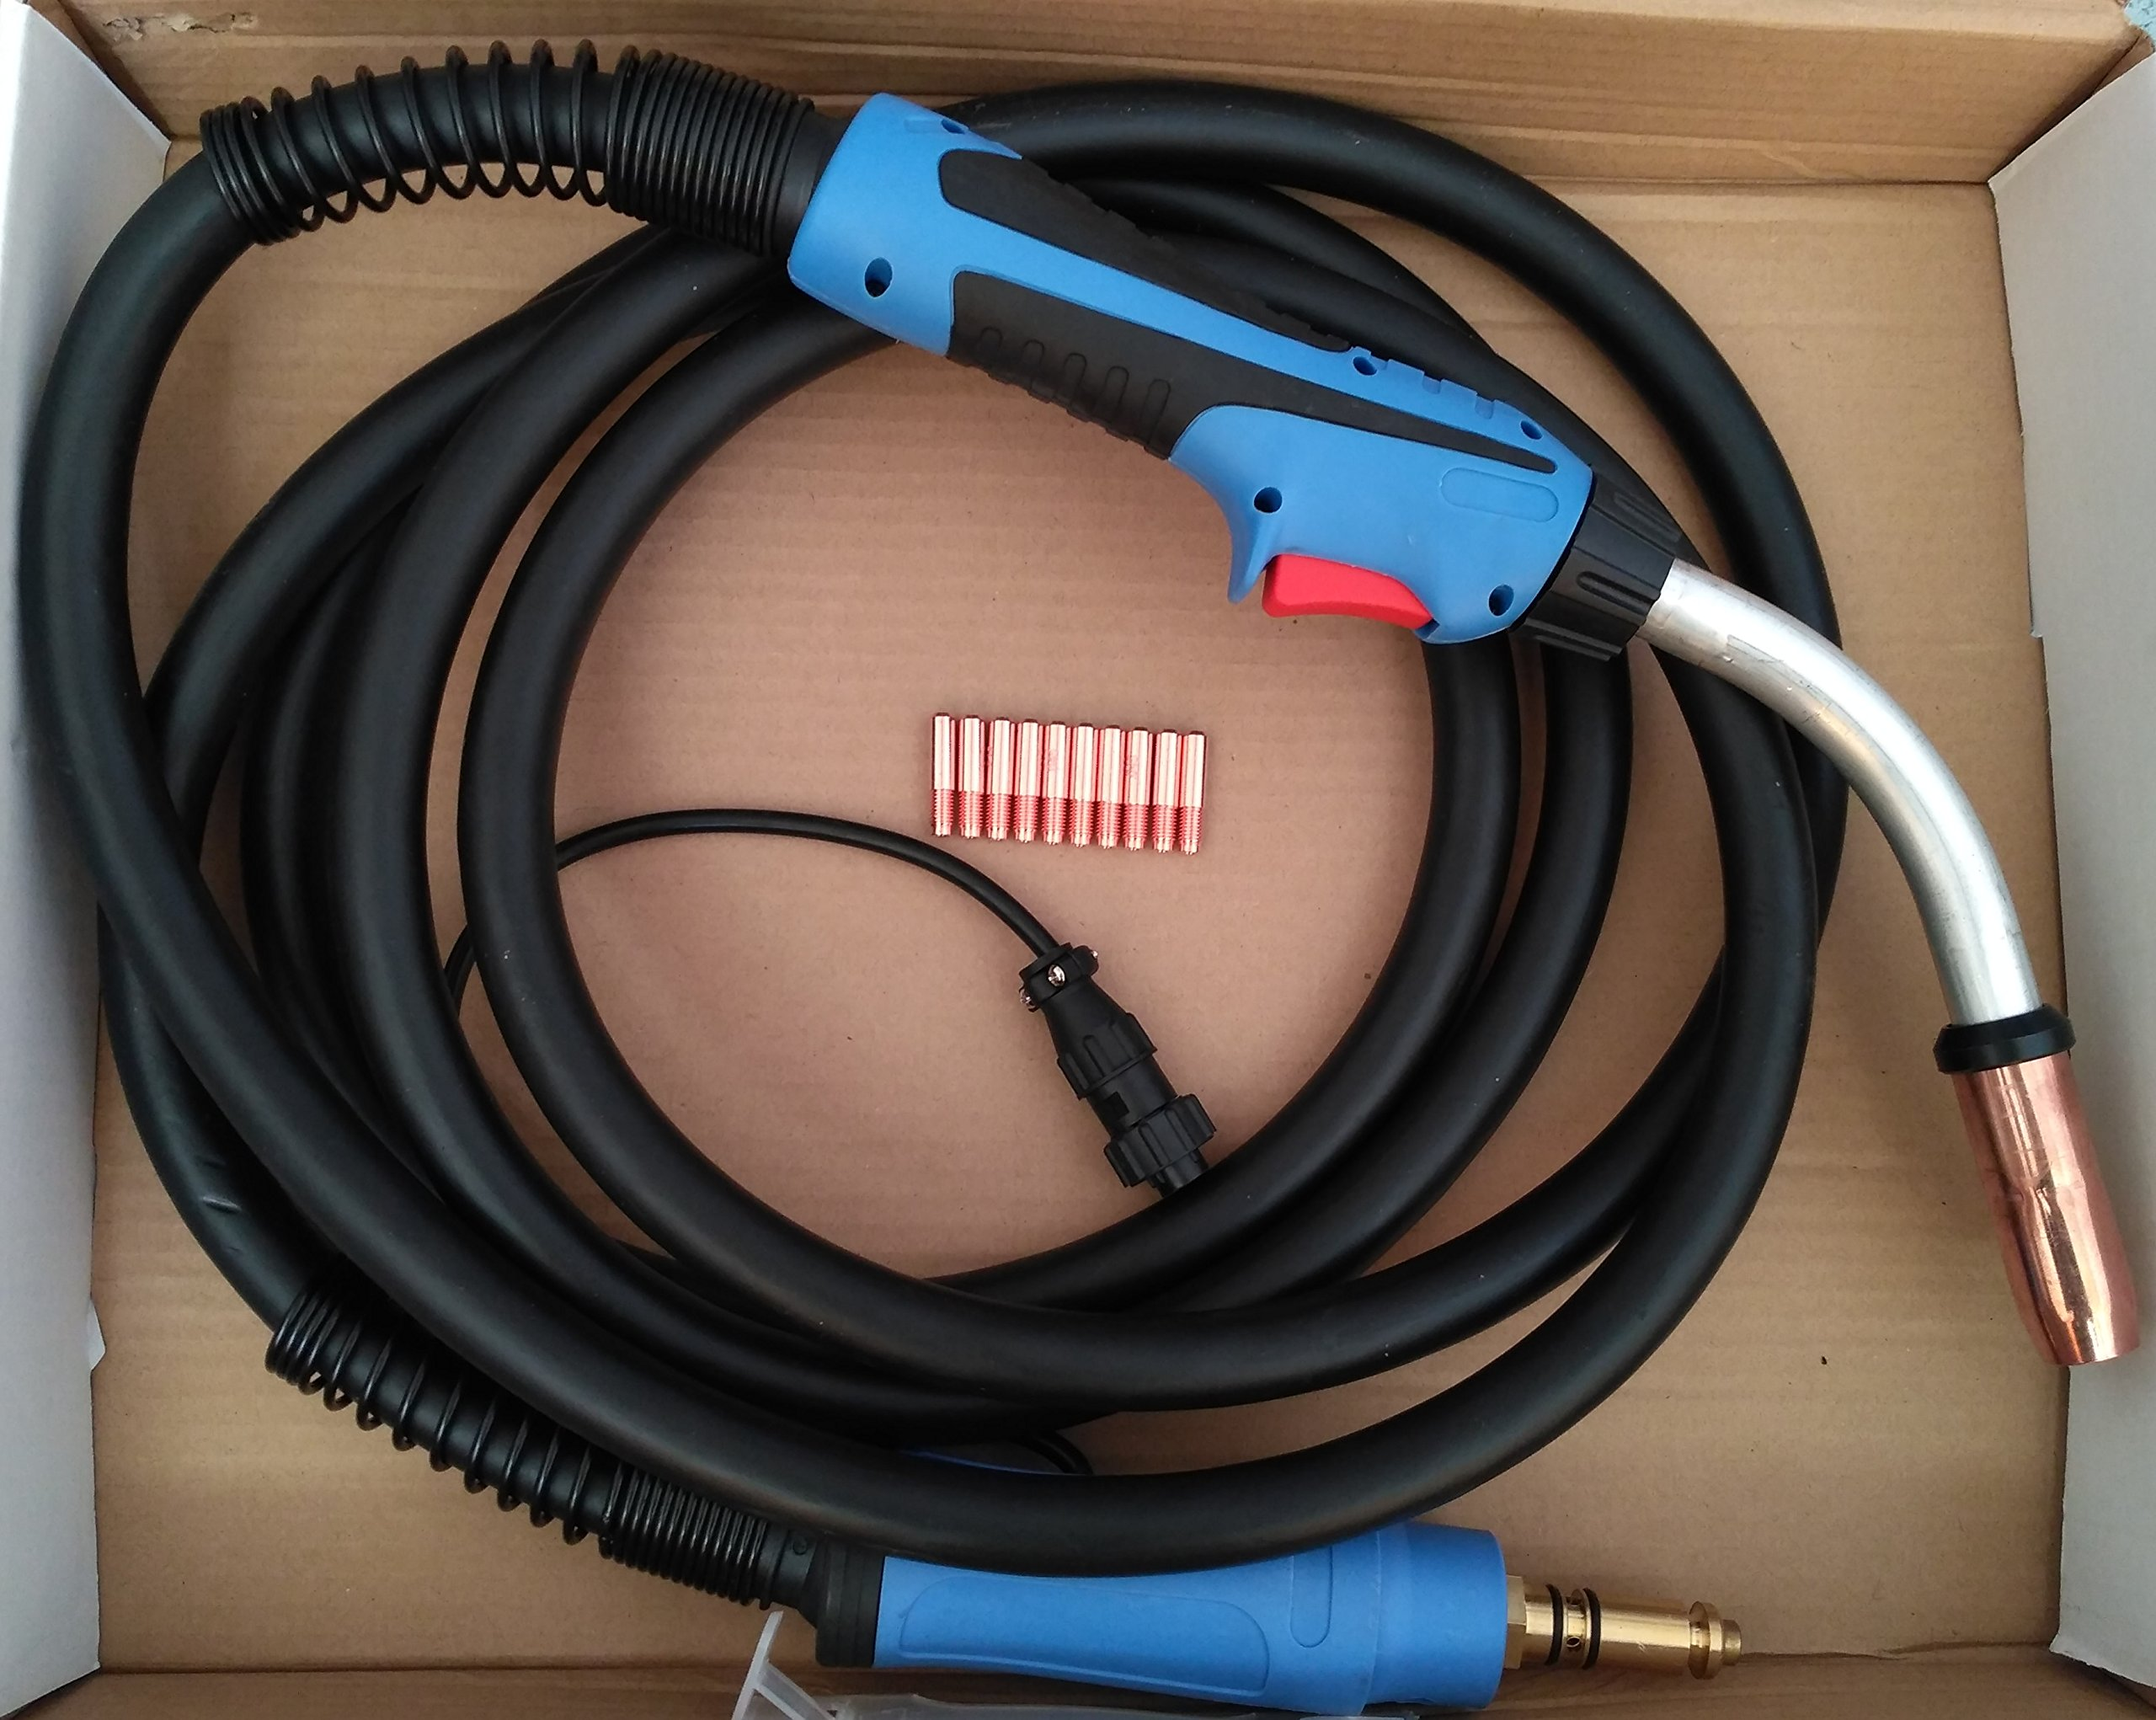 MIG WELDING GUN & TORCH,15' 400AMP for LINCOLN machines,replacement for Tweco #4 (ETA:5-10 WORK DAYS)